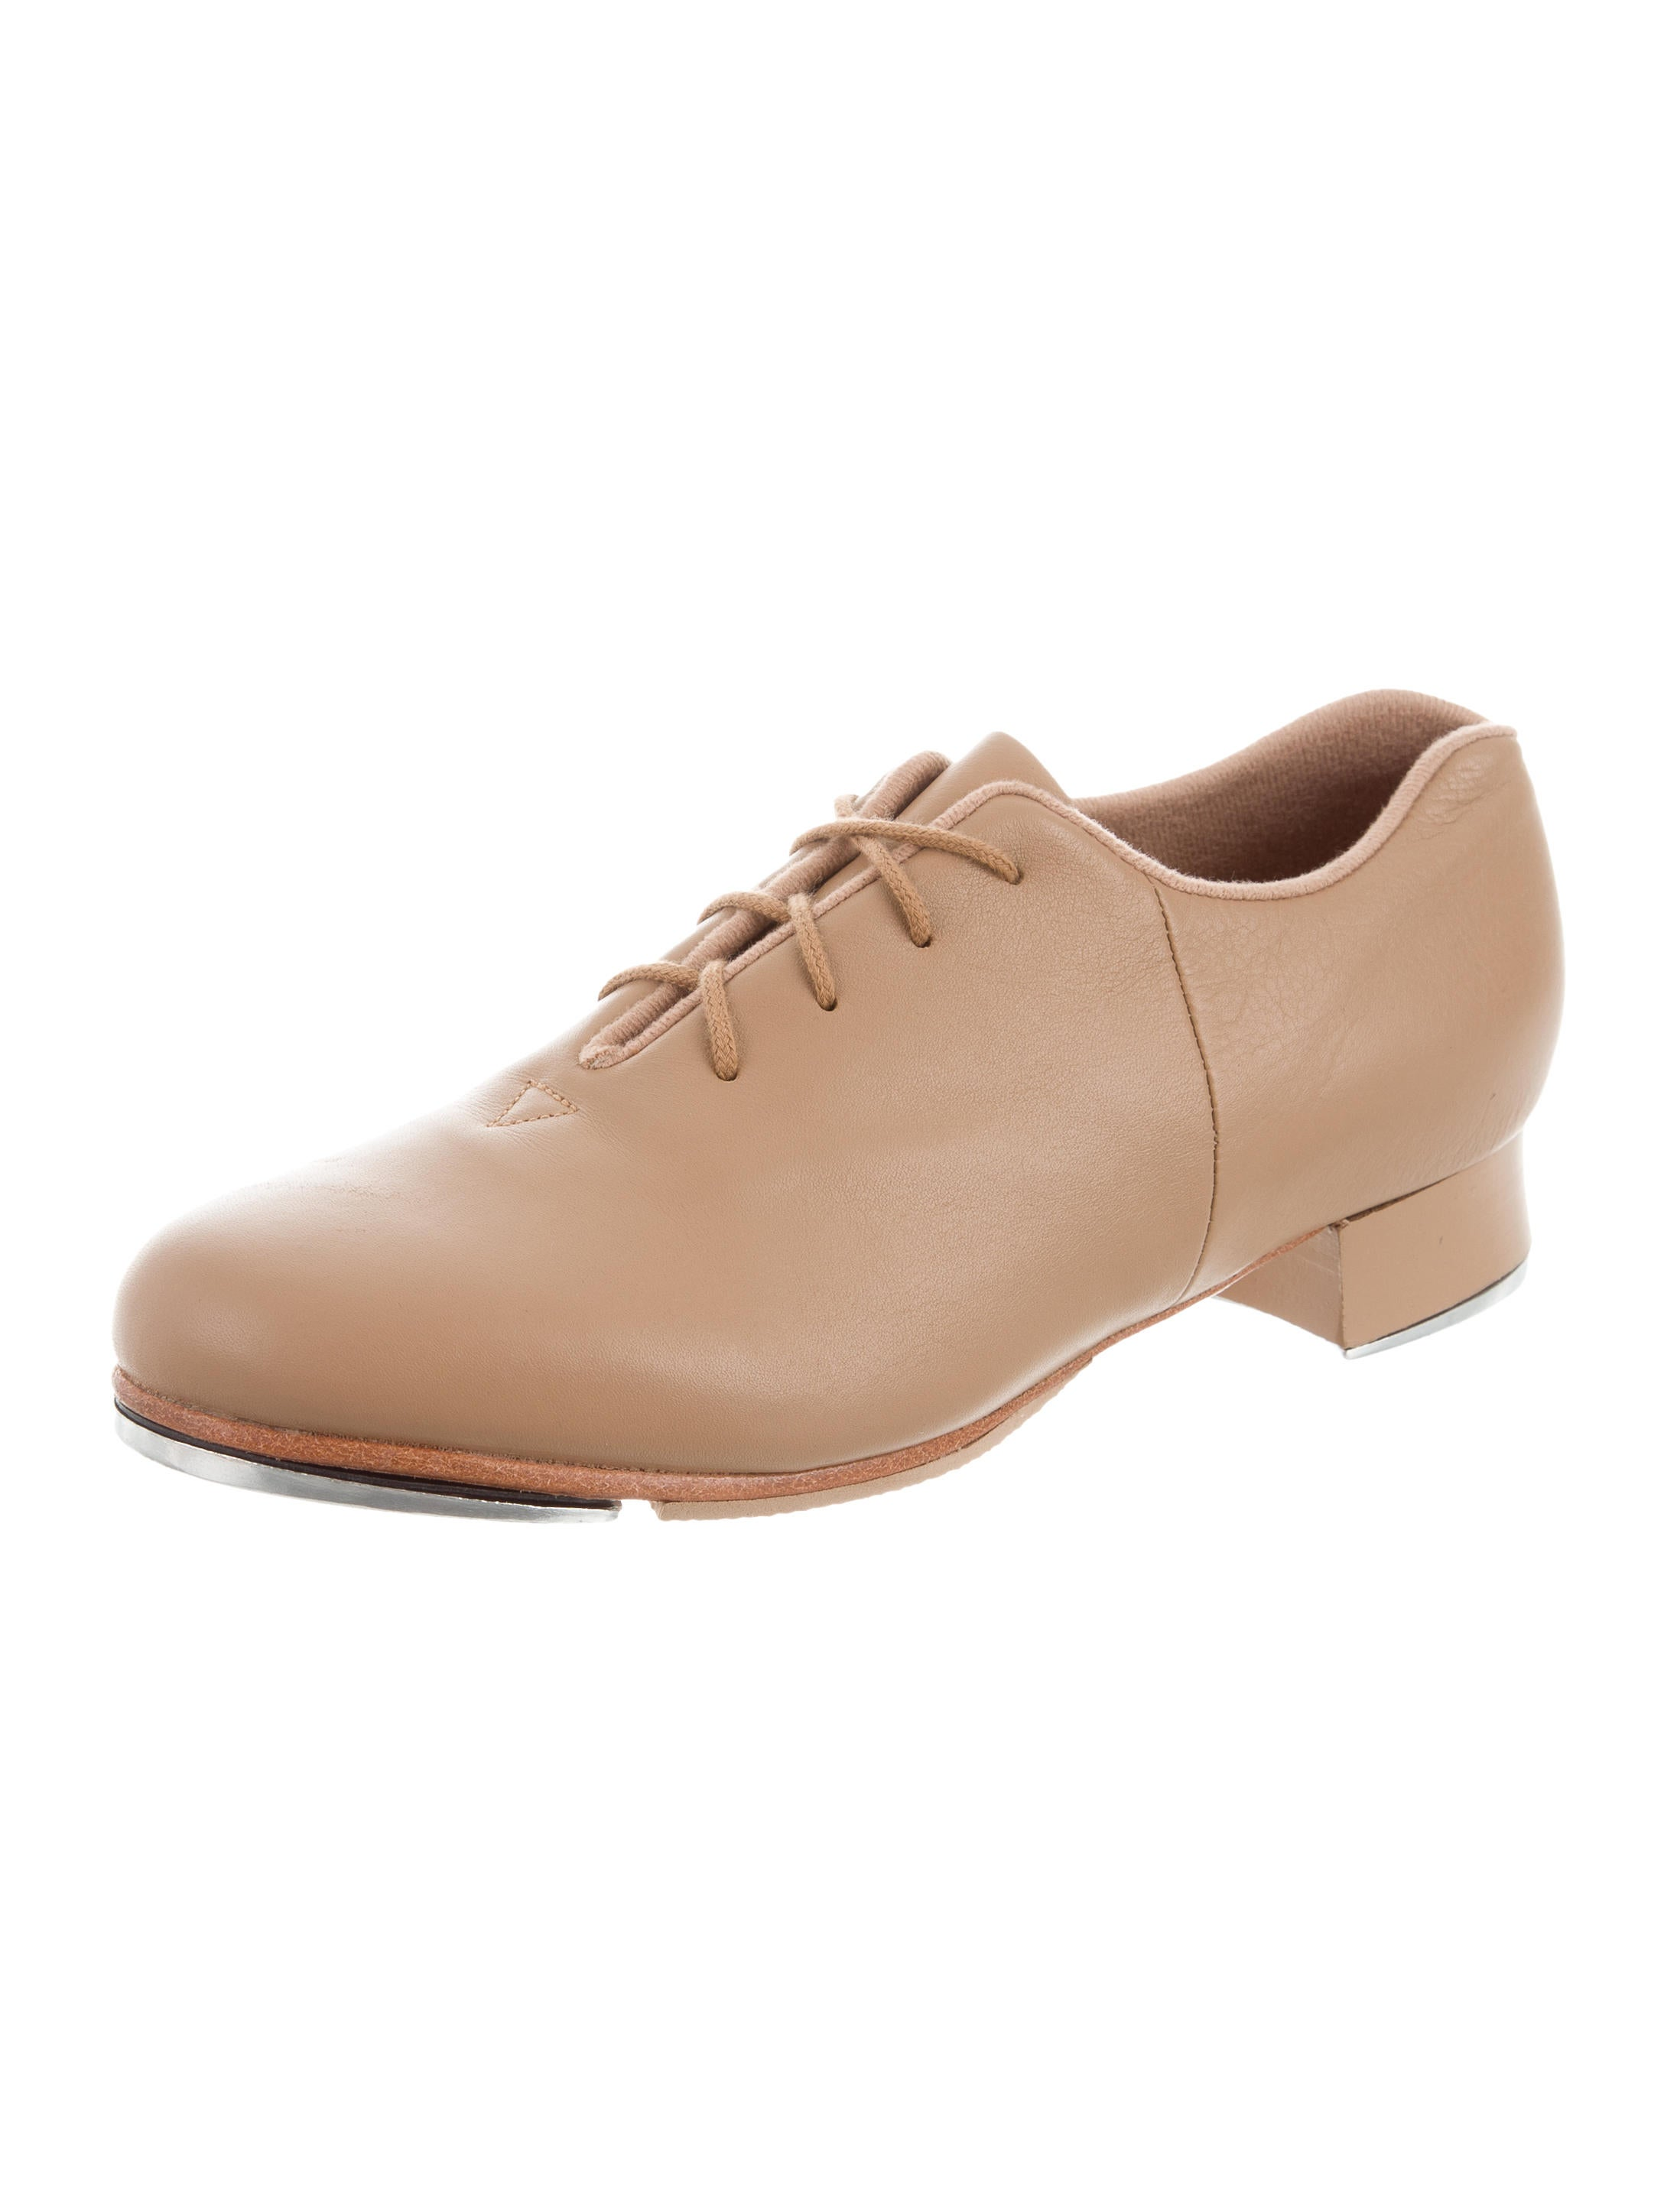 sale 100% guaranteed Bloch Leather Lace-Up Oxfords w/ Tags discount new clearance low cost reliable cheap pre order J0717iz